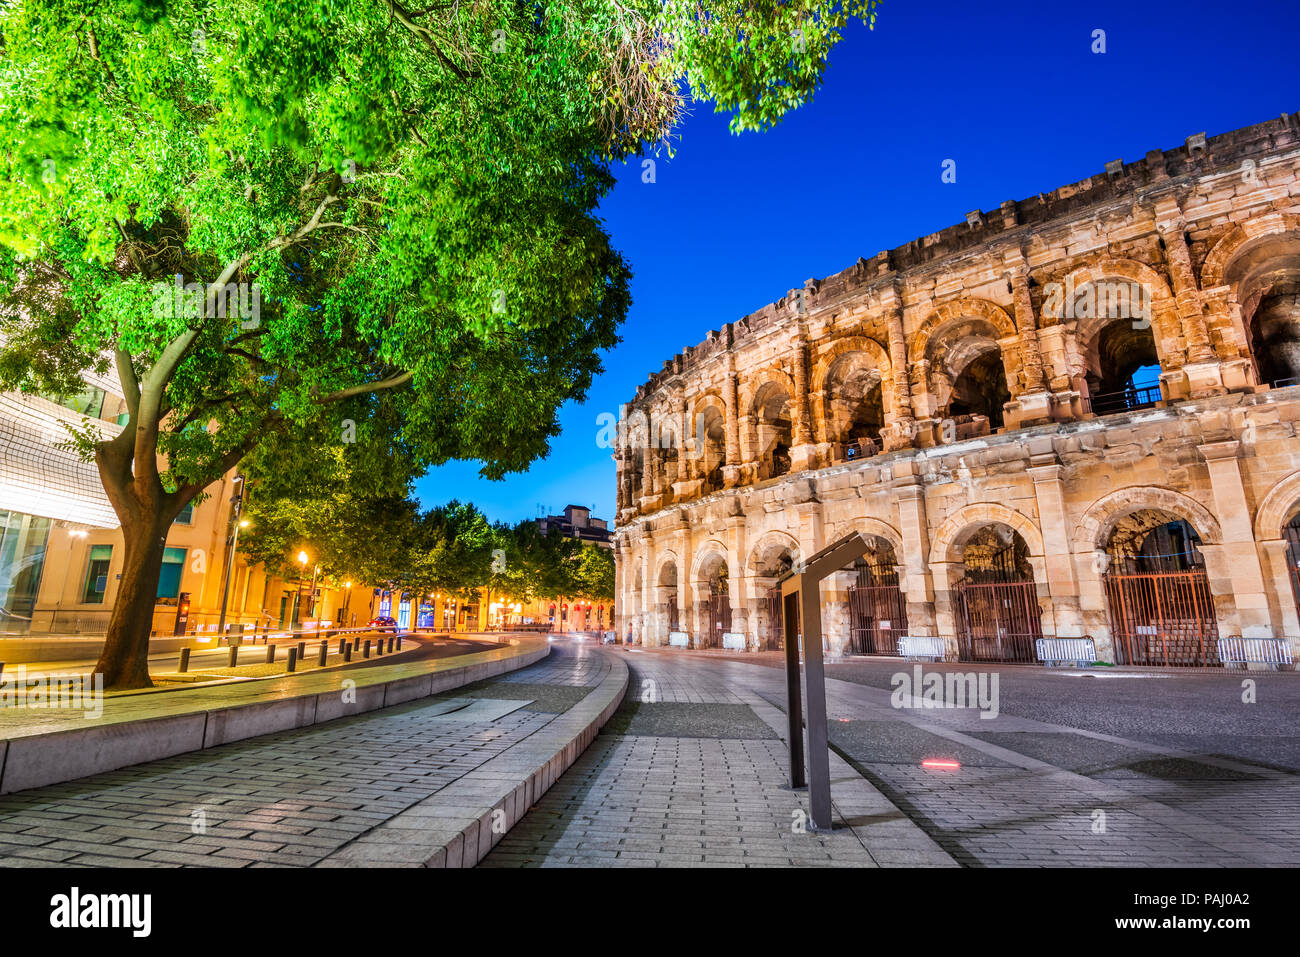 Nimes, ancient Roman amphitheatre in the Occitanie region of southern France.  Magnificent huge Arena. - Stock Image